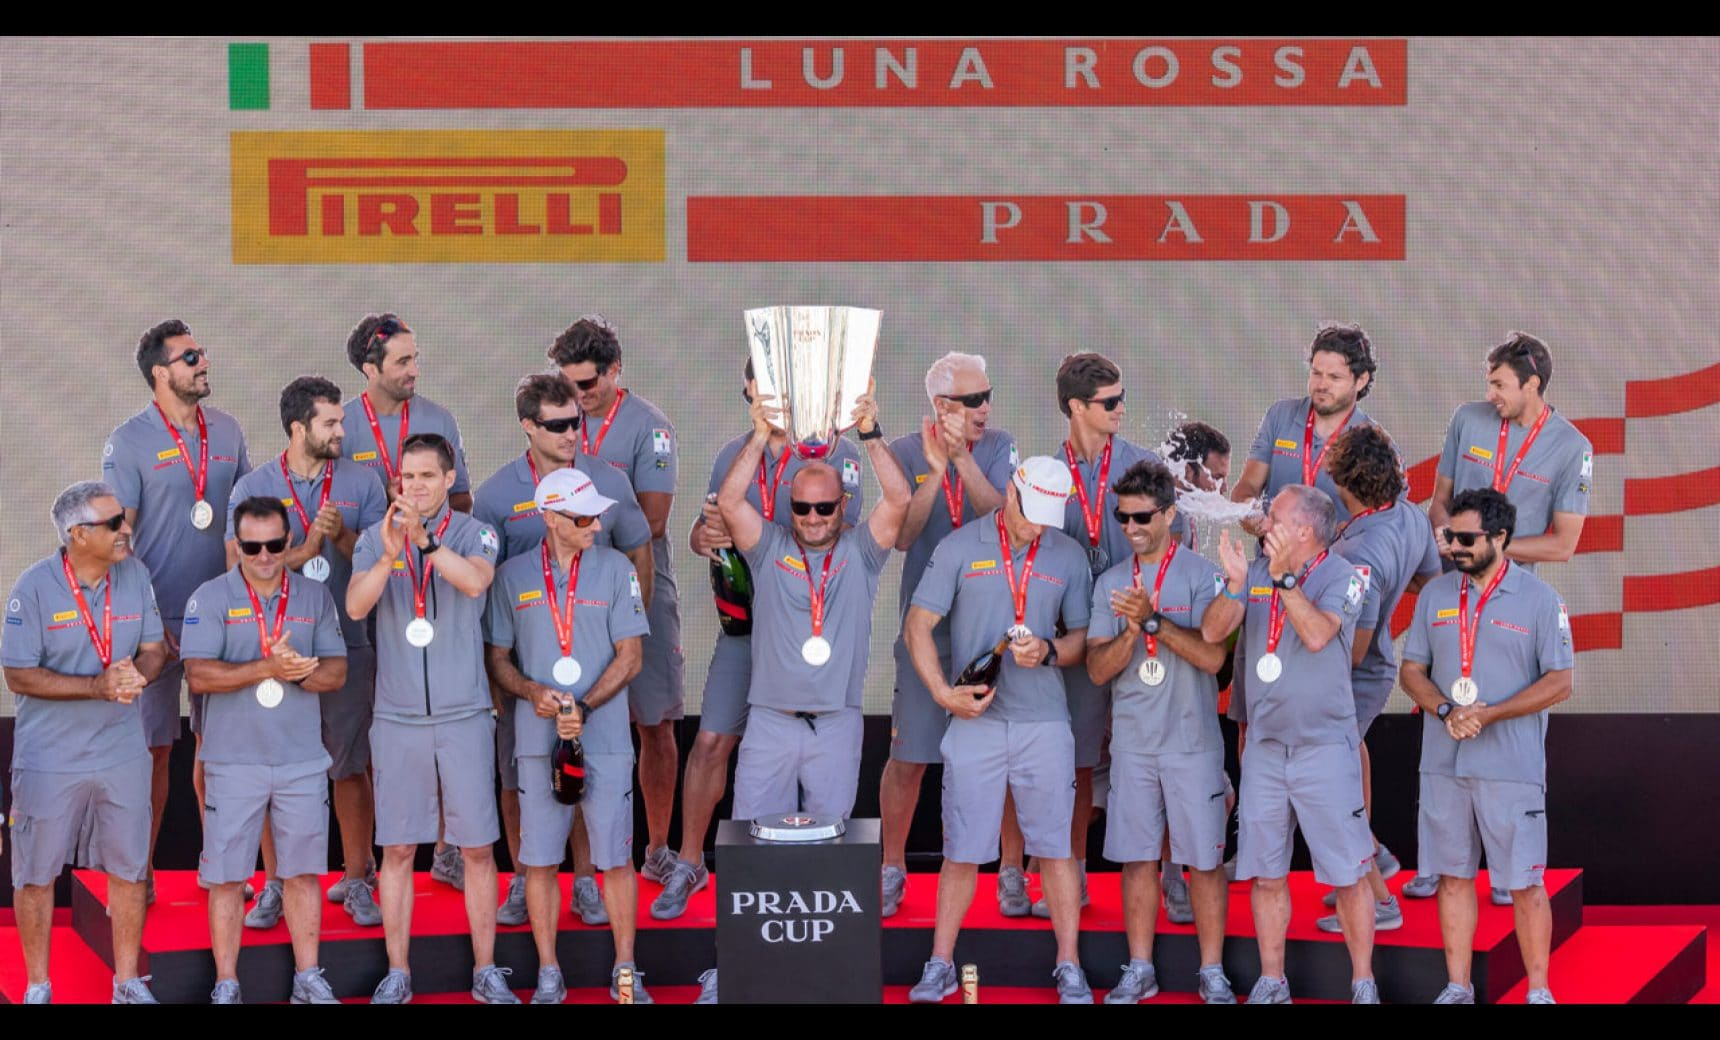 LUNA ROSSA PRADA PIRELLI CONQUERS THE PRADA CUP AND HEADS FOR THE AMERICA'S CUP